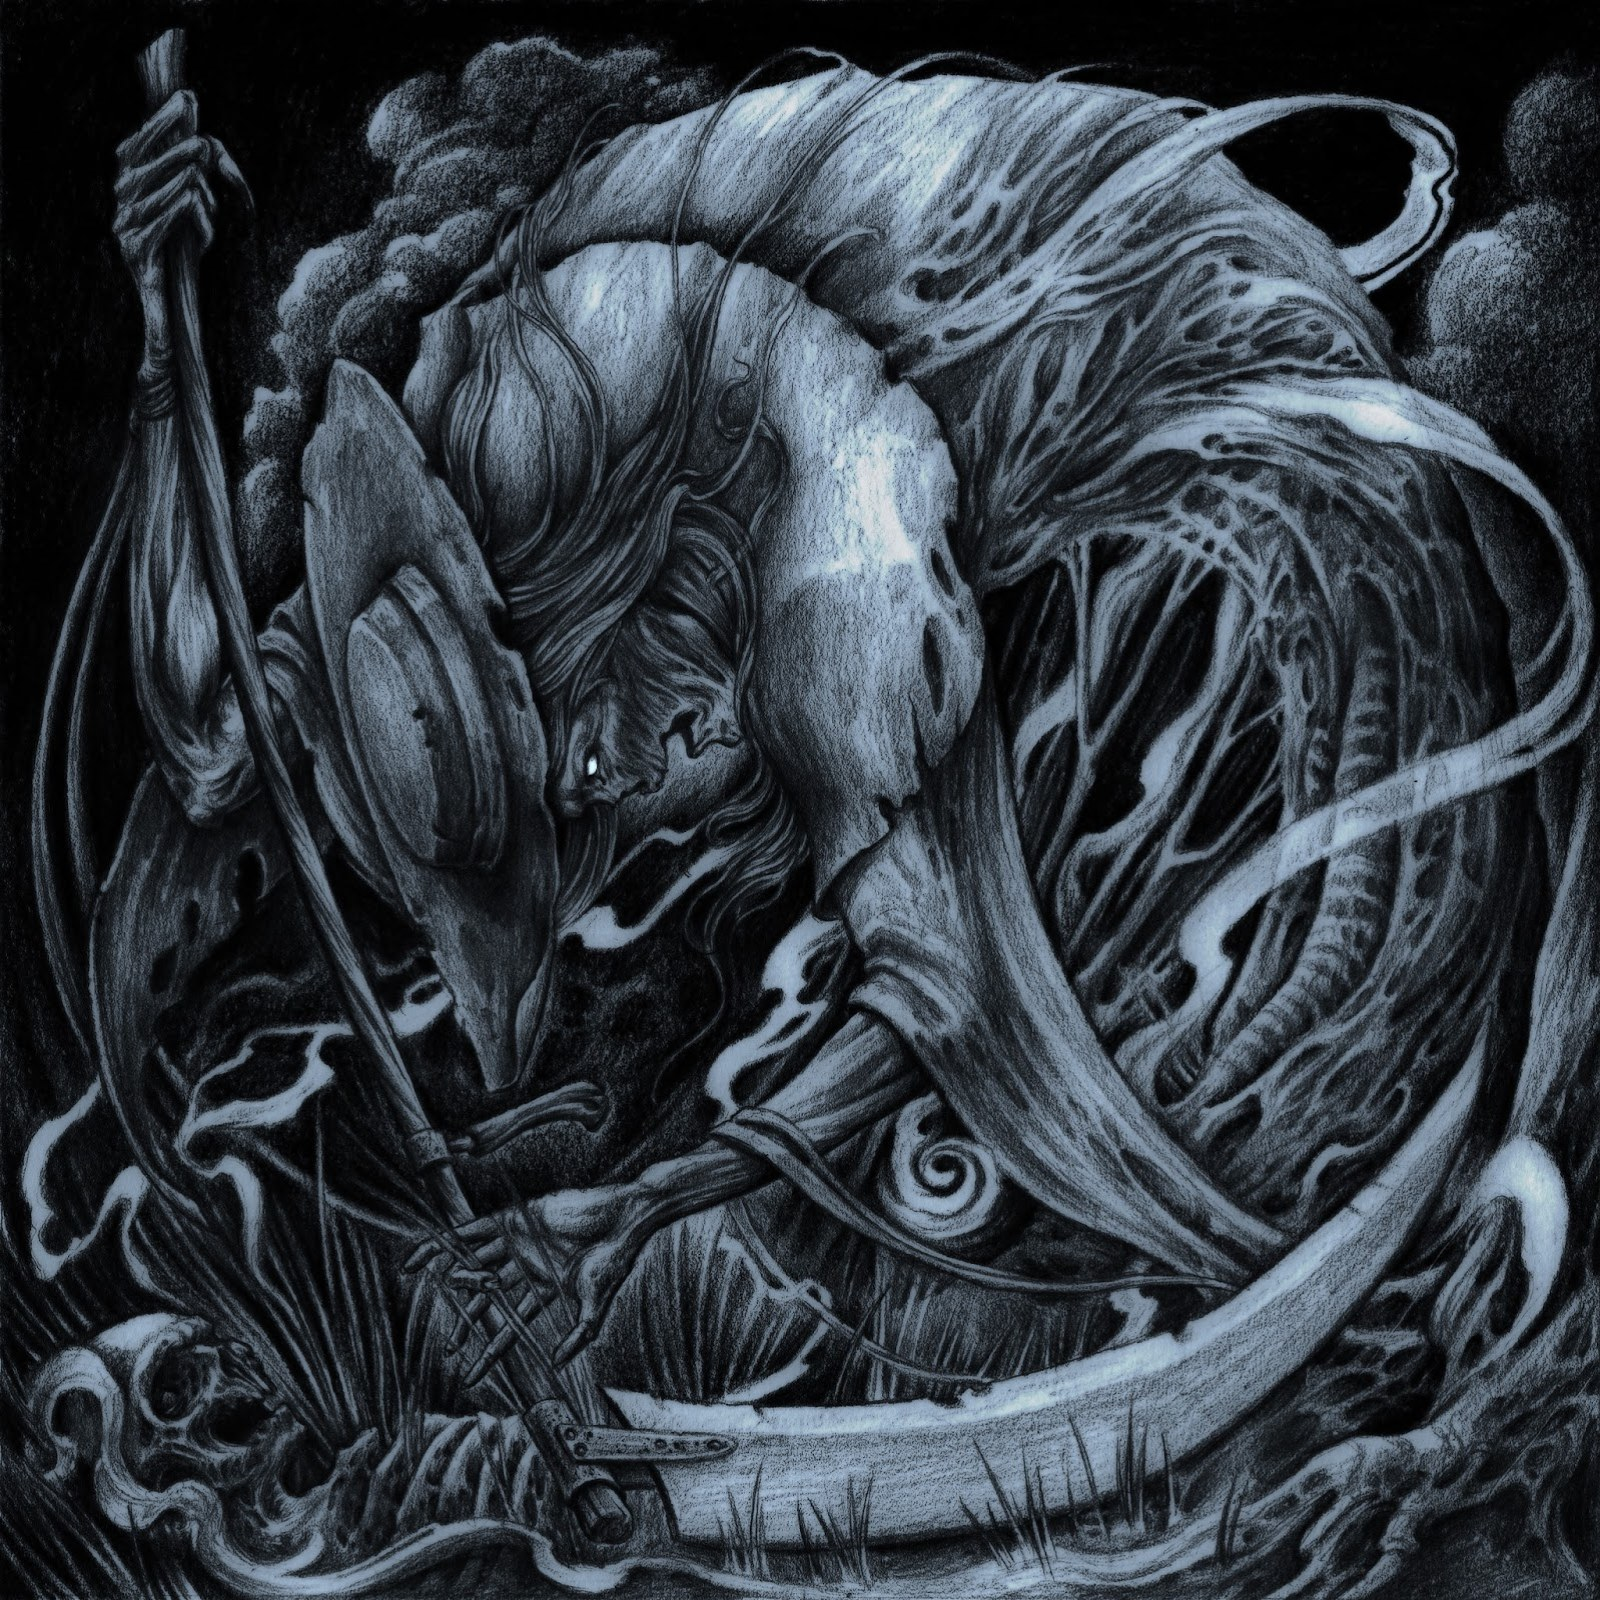 Review for Black Funeral - Ankou and the Death Fire